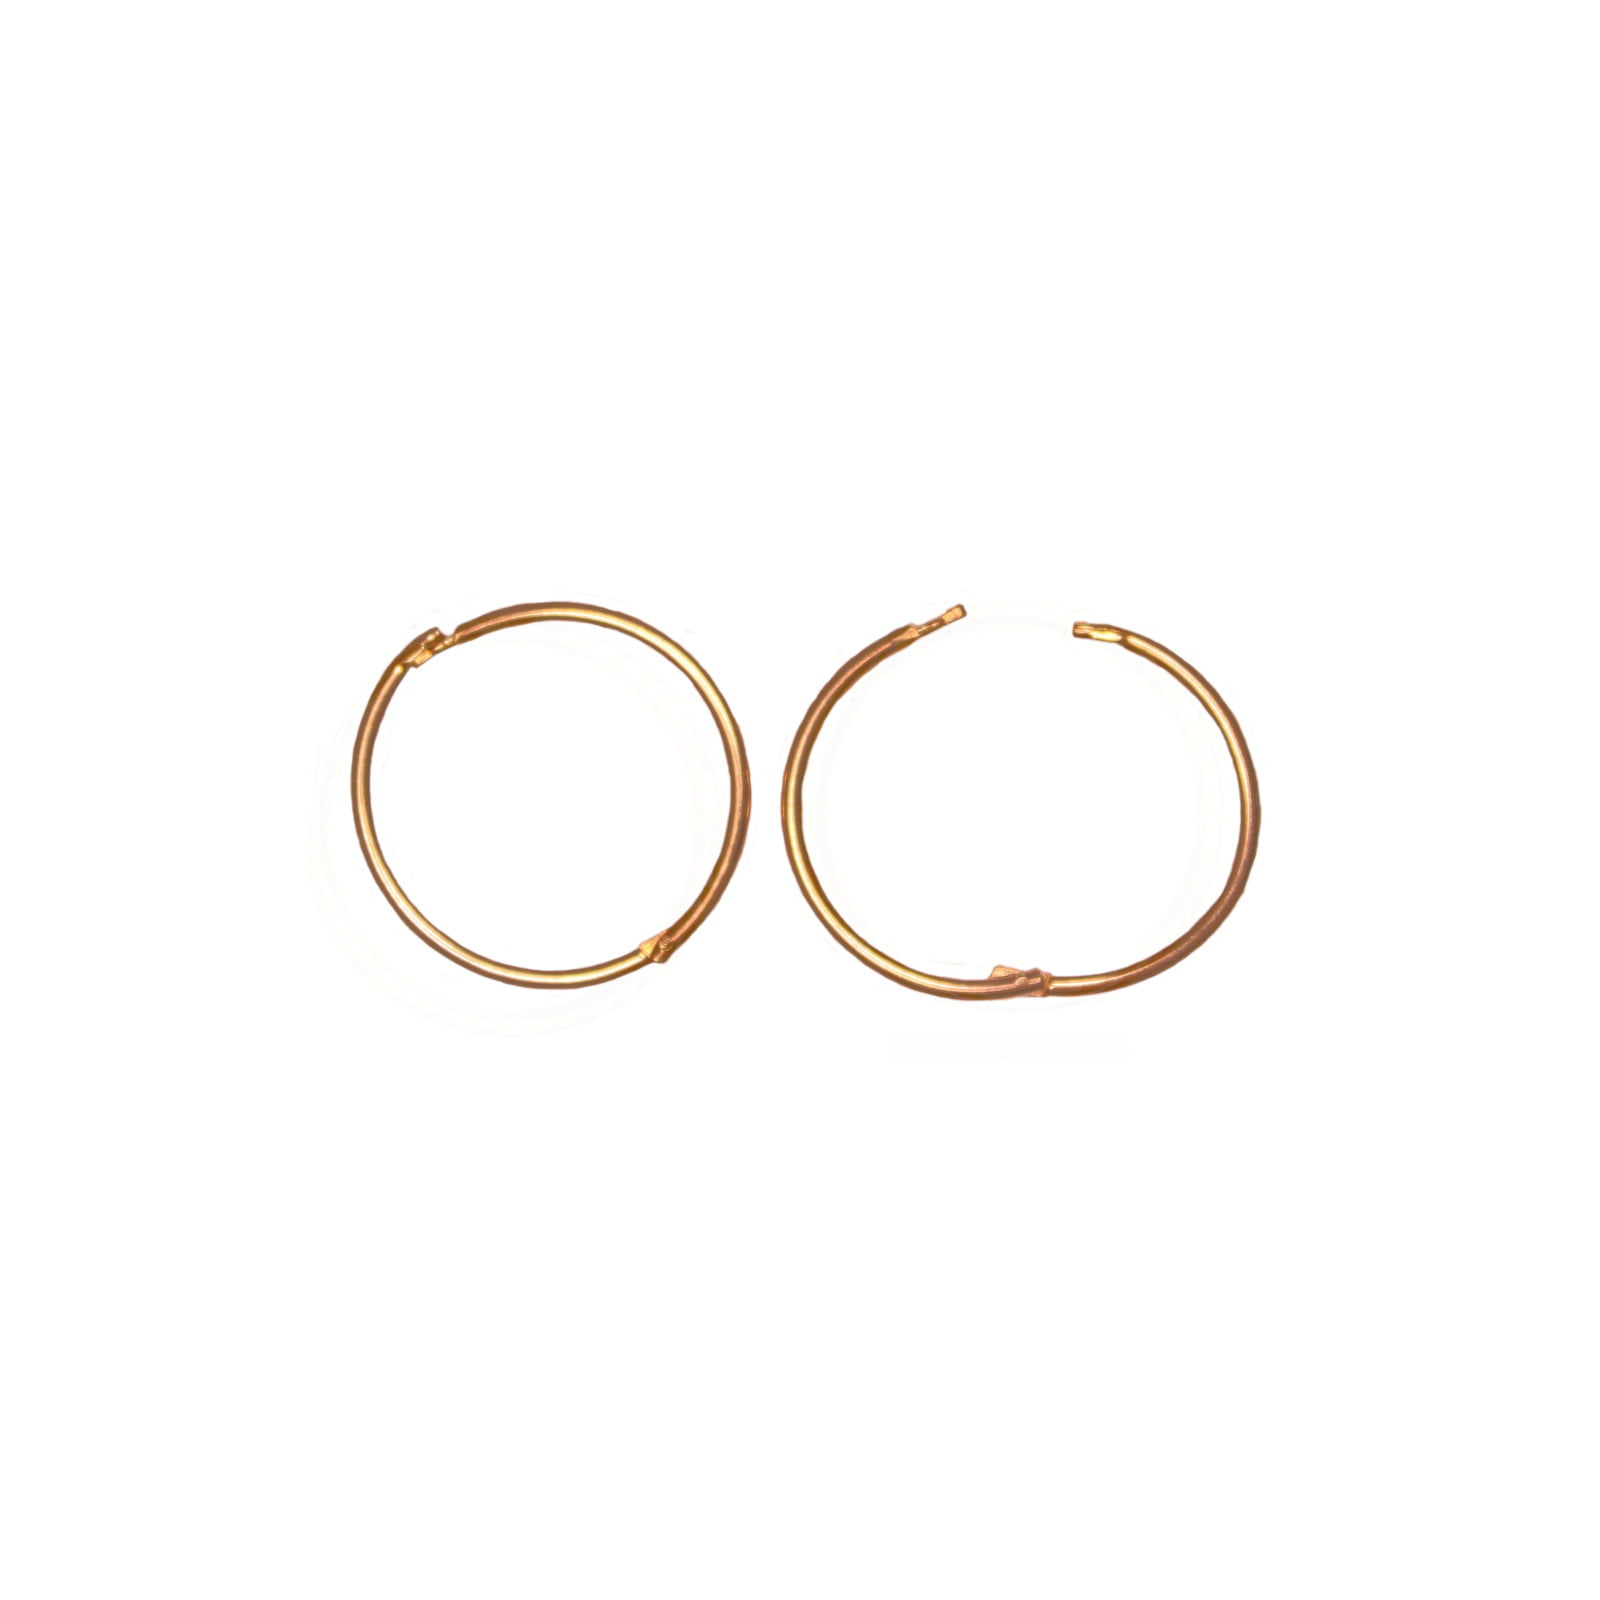 Pair of 9ct yellow gold hinged hoop earrings. 14mm across.